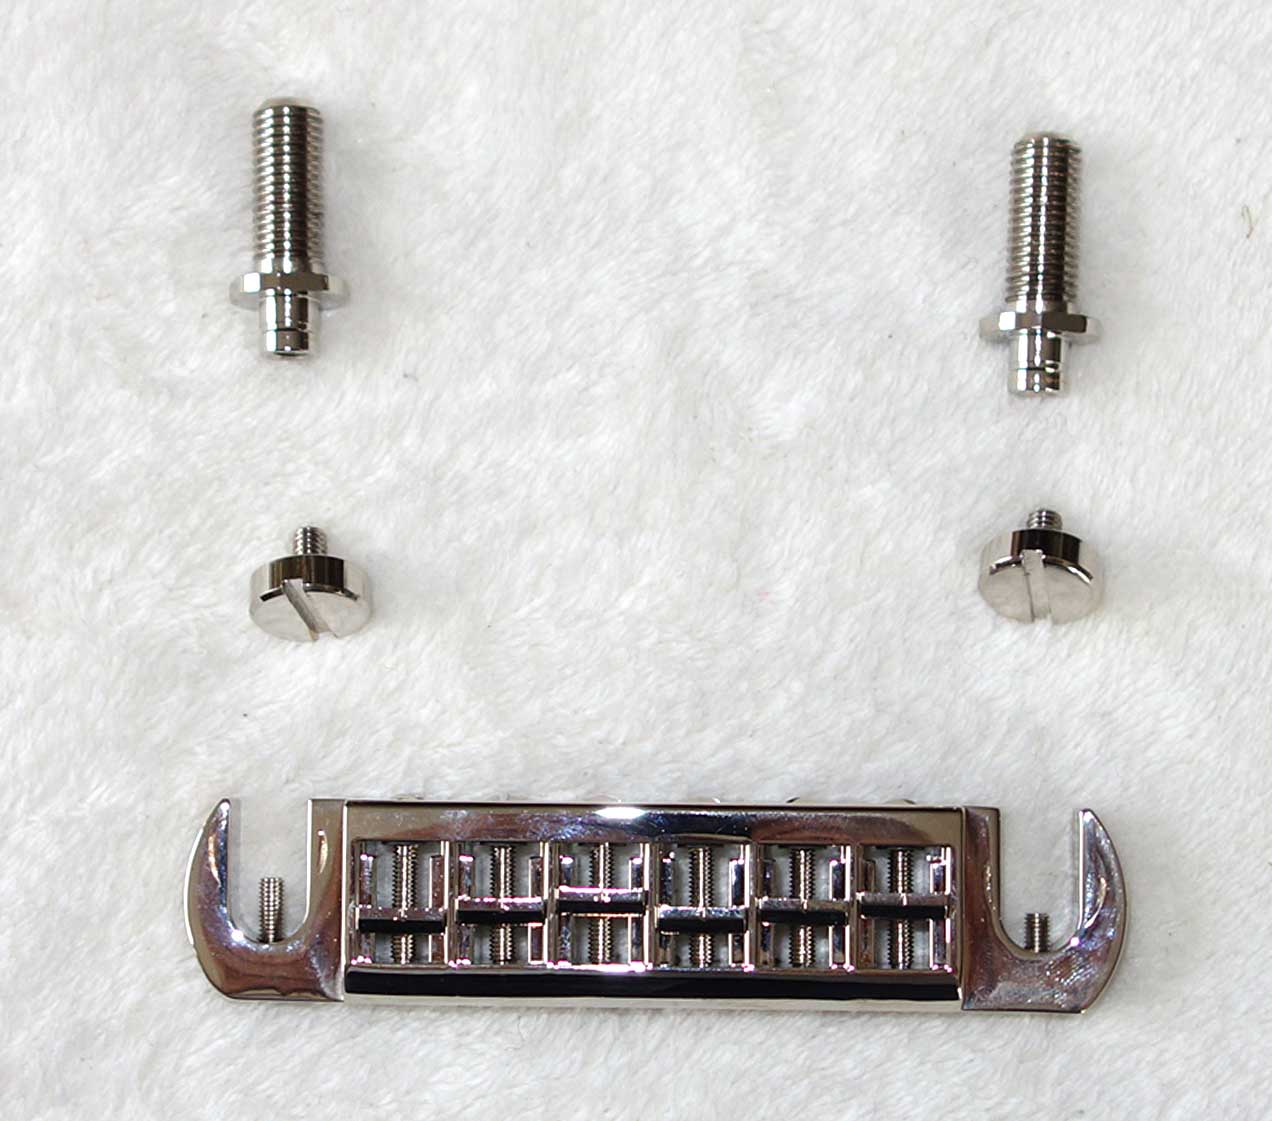 Used TonePros ATV-2 Intonable Wraparound Bridge Tailpiece for Les Paul Junior, SG Special, Melody Maker, Epi Coronet + Several Others